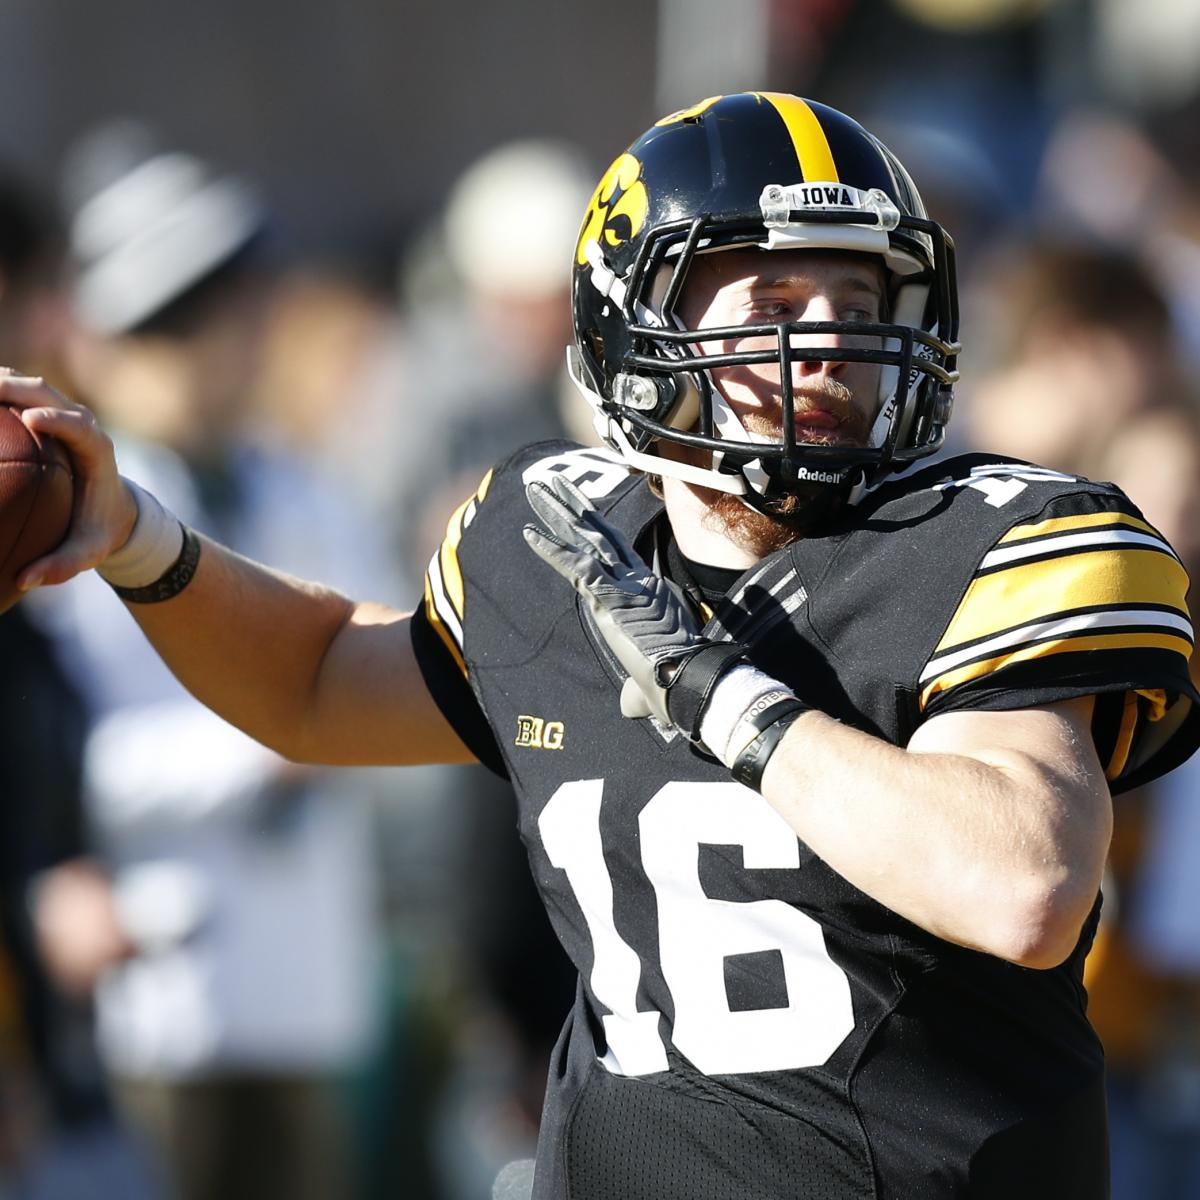 Rookie QB C.J. Beathard Isn't Exciting, But He May Be